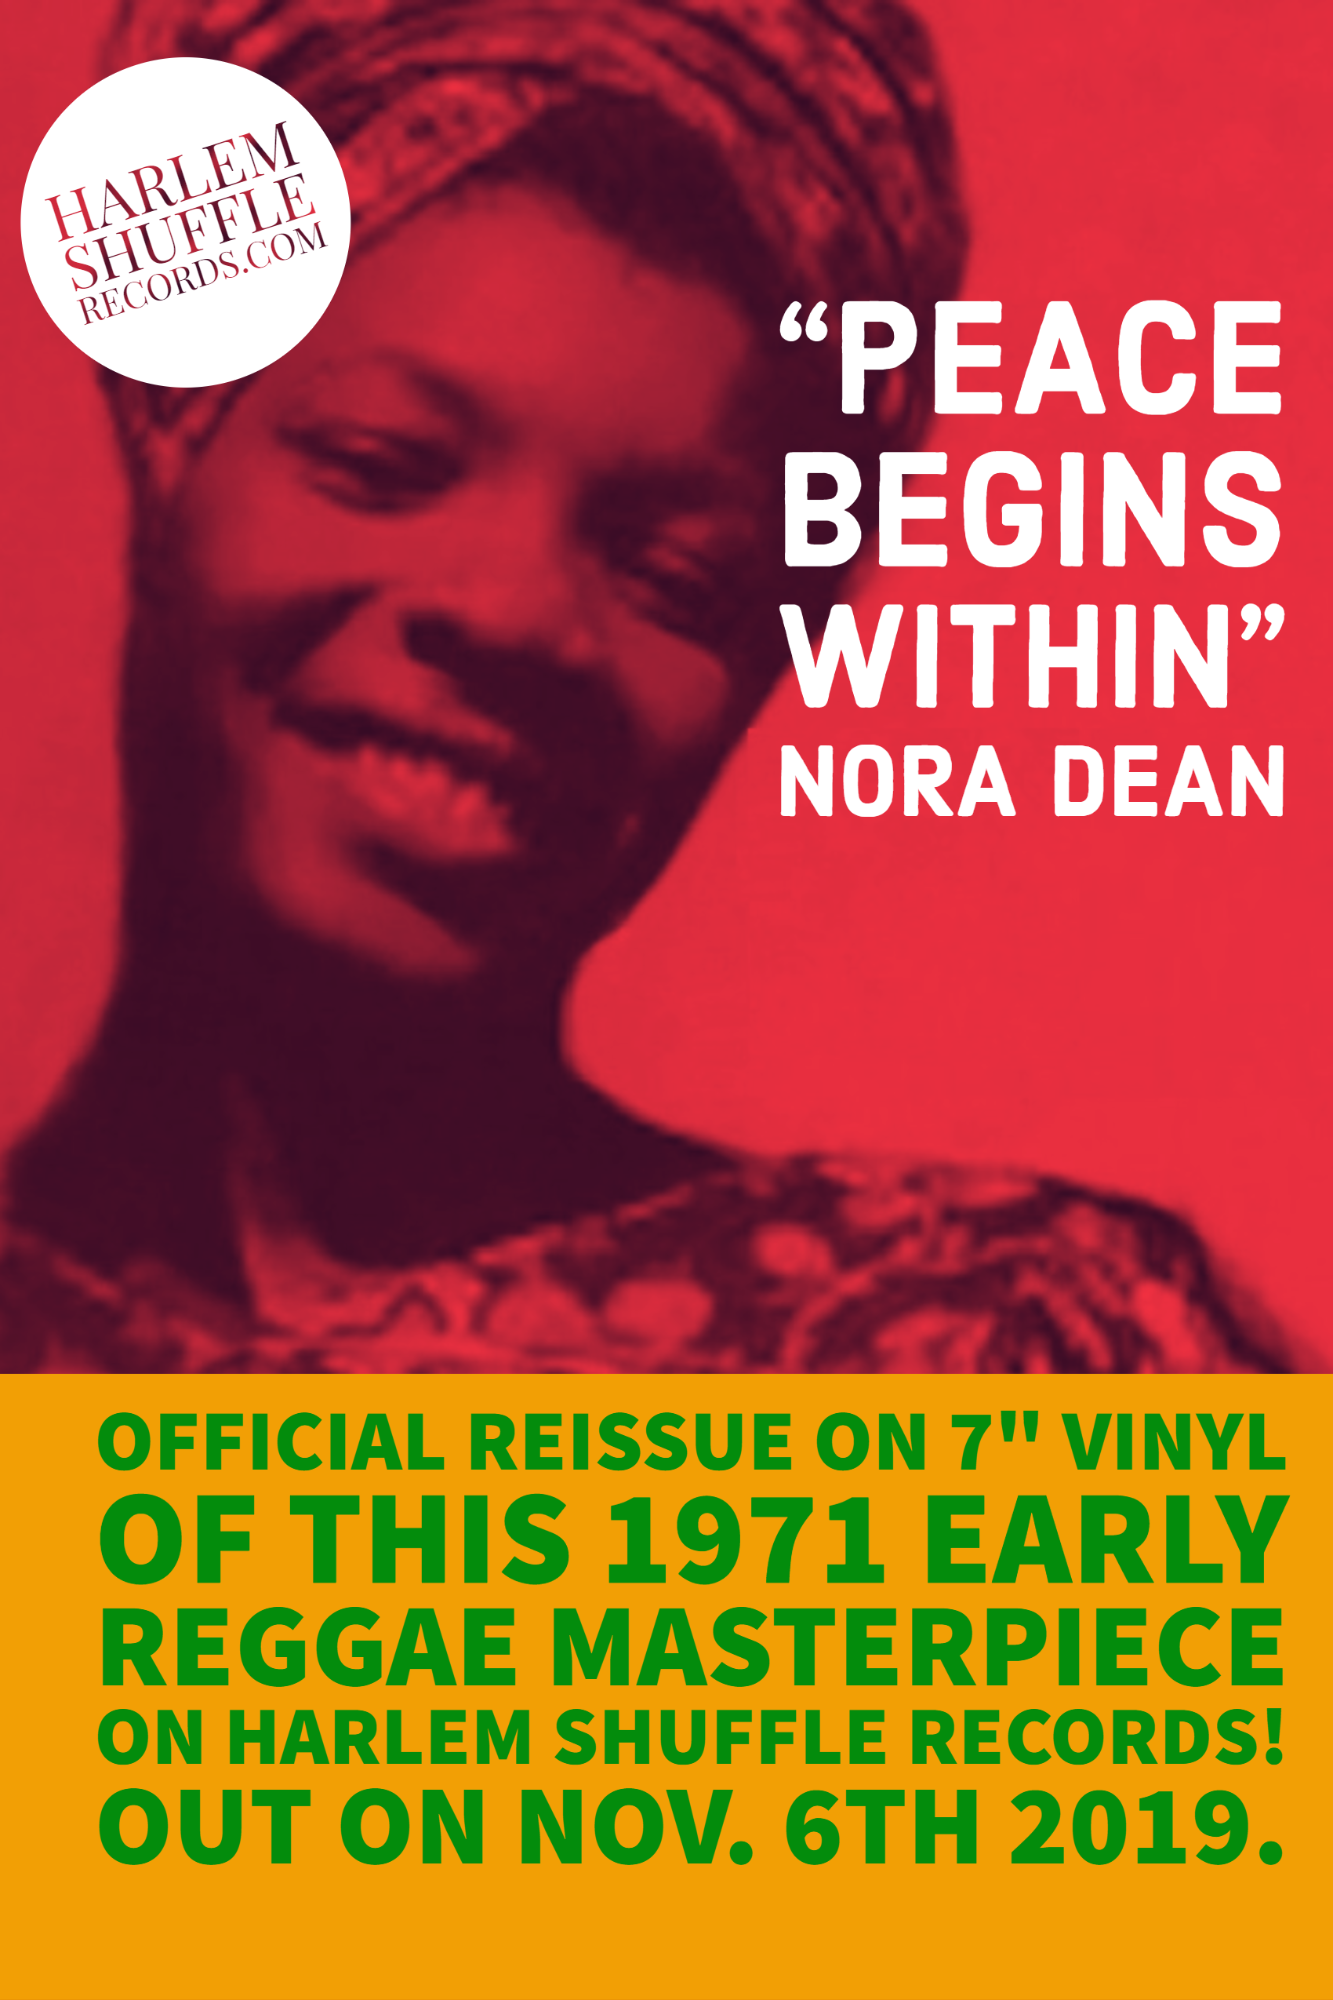 Nora Dean 6 th Nov 19 - no res.png